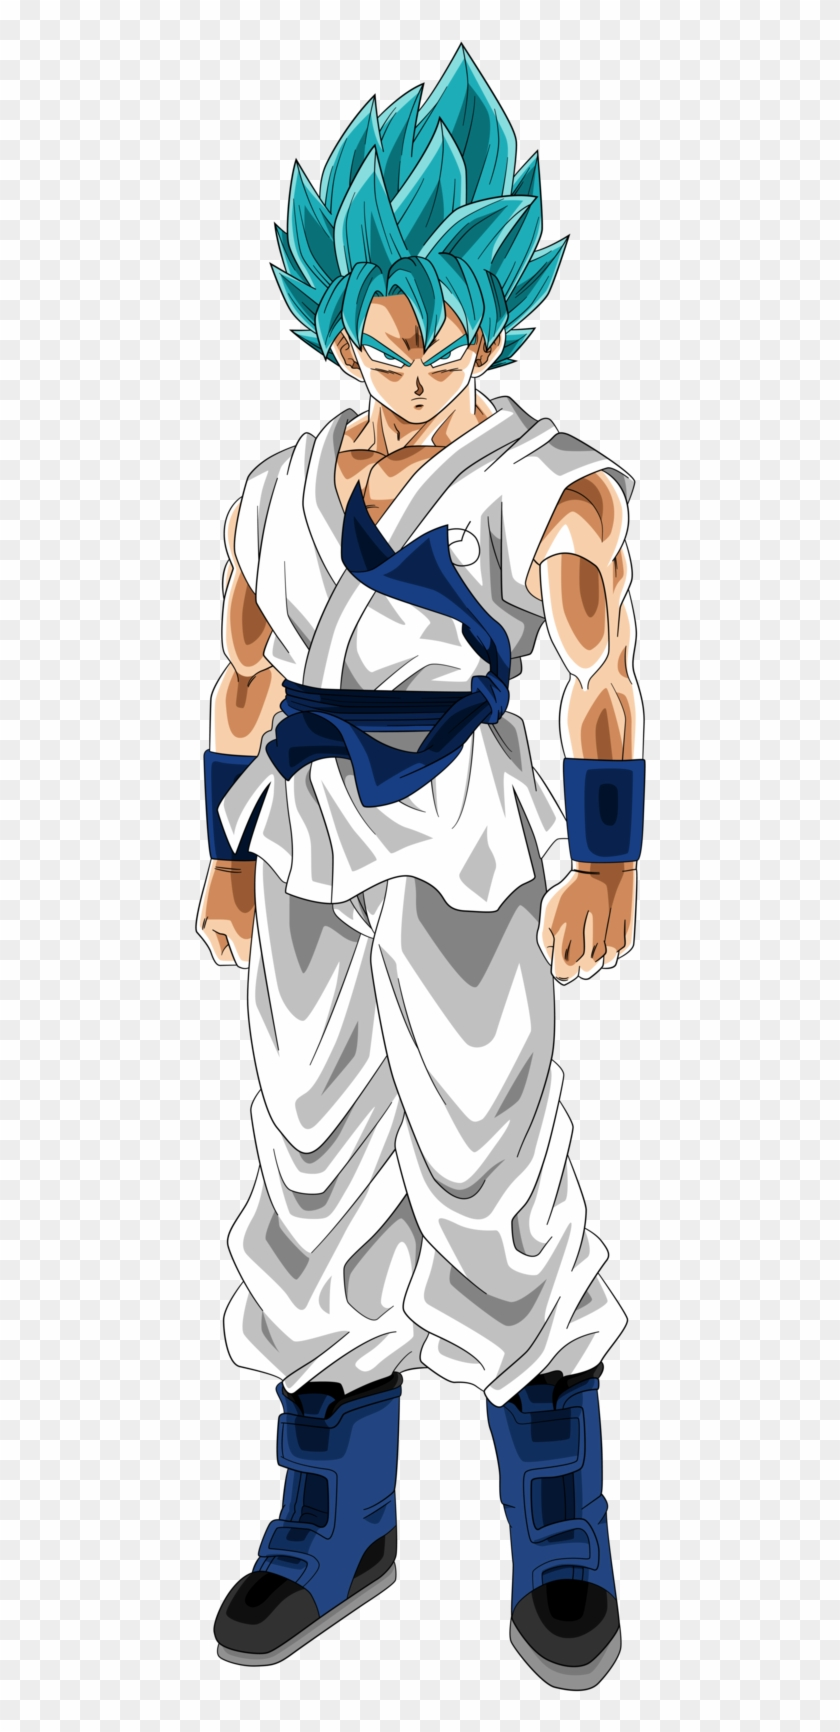 Goku Dragon Ball Heroes Png Download Dragon Ball Heroes 3d Transparent Png 453x1652 5824325 Pngfind